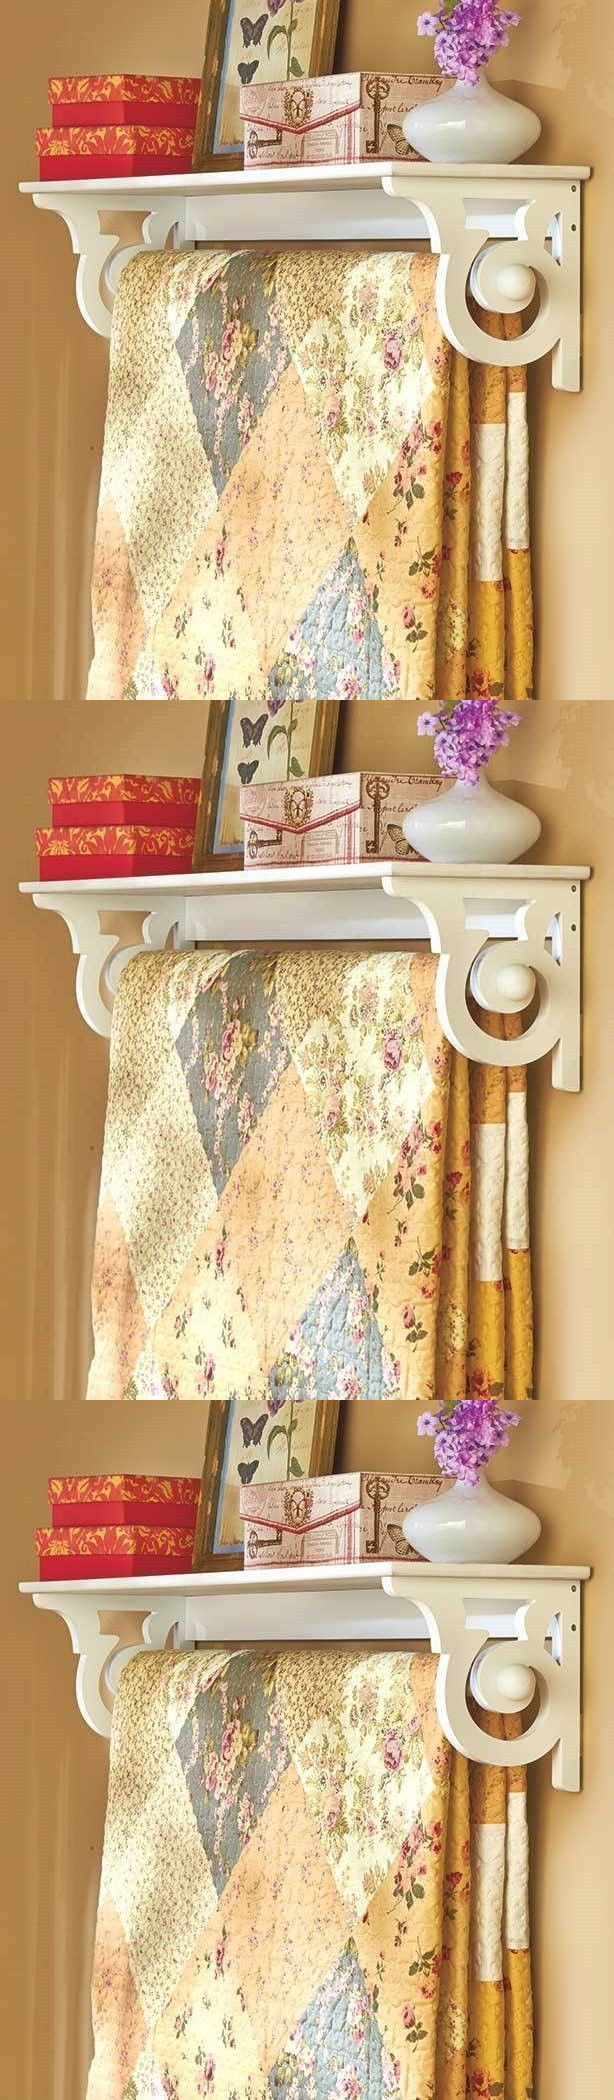 Quilt Hangers and Stands 83959: White Wall Quilt Rack Hanging Throw ...